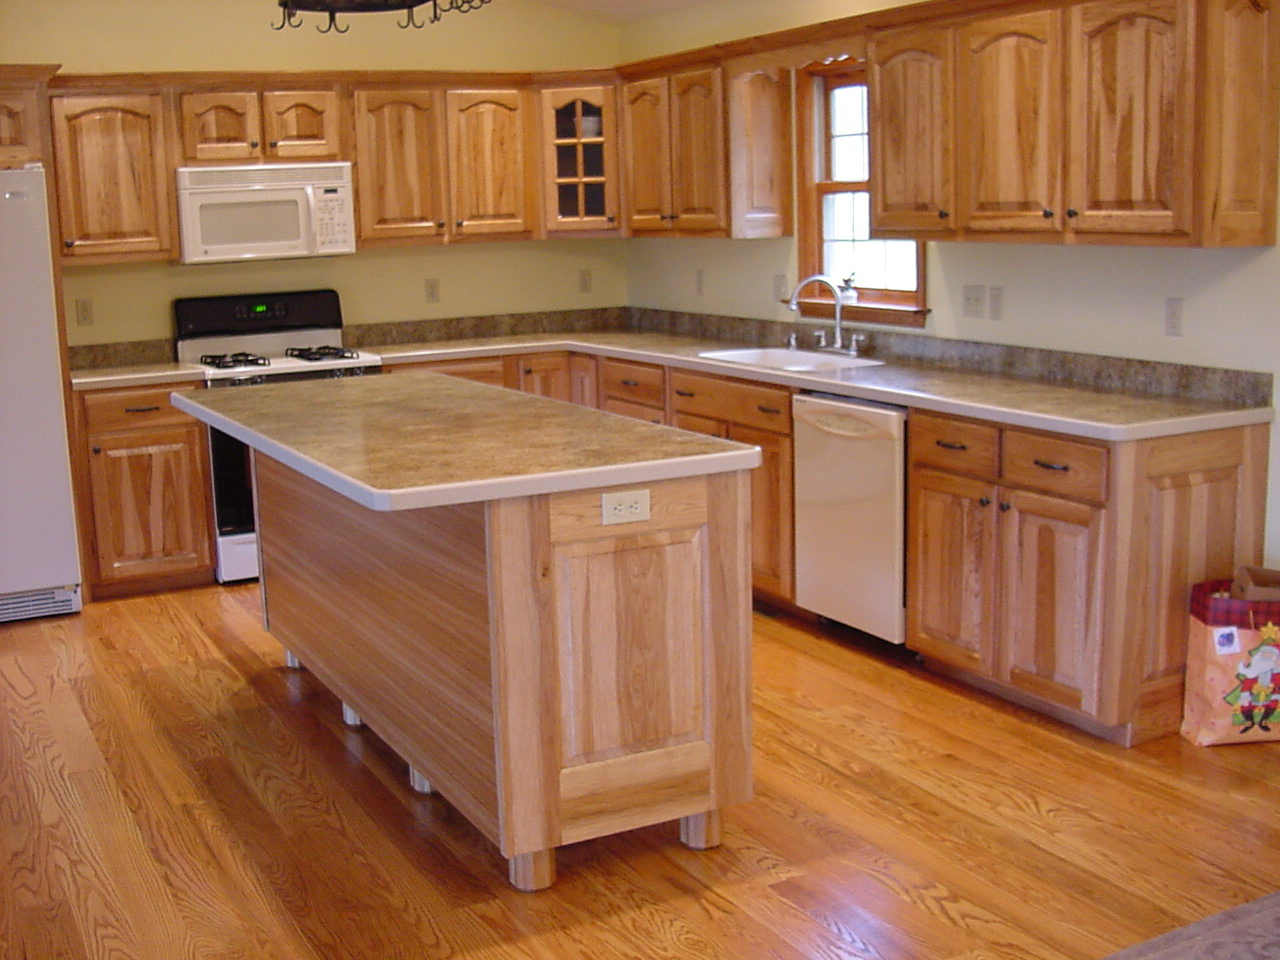 Countertop Materials Laminate : HOUSE CONSTRUCTION IN INDIA: KITCHENS COUNTERTOP MATERIALS